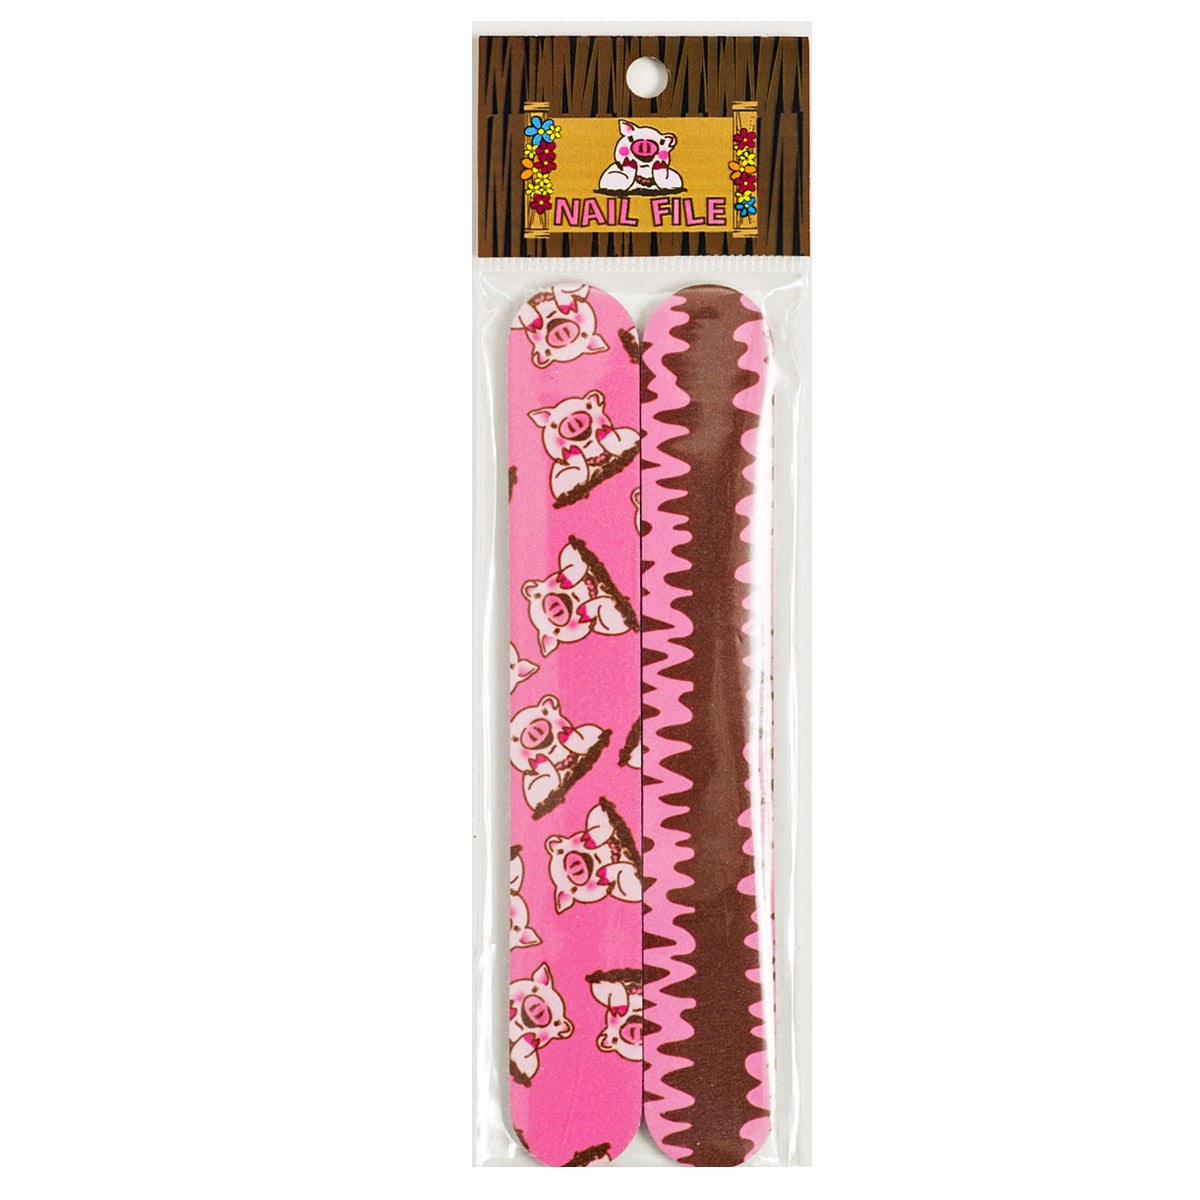 Piggy Paint - 2 Pack Nail Files All Things Being Eco